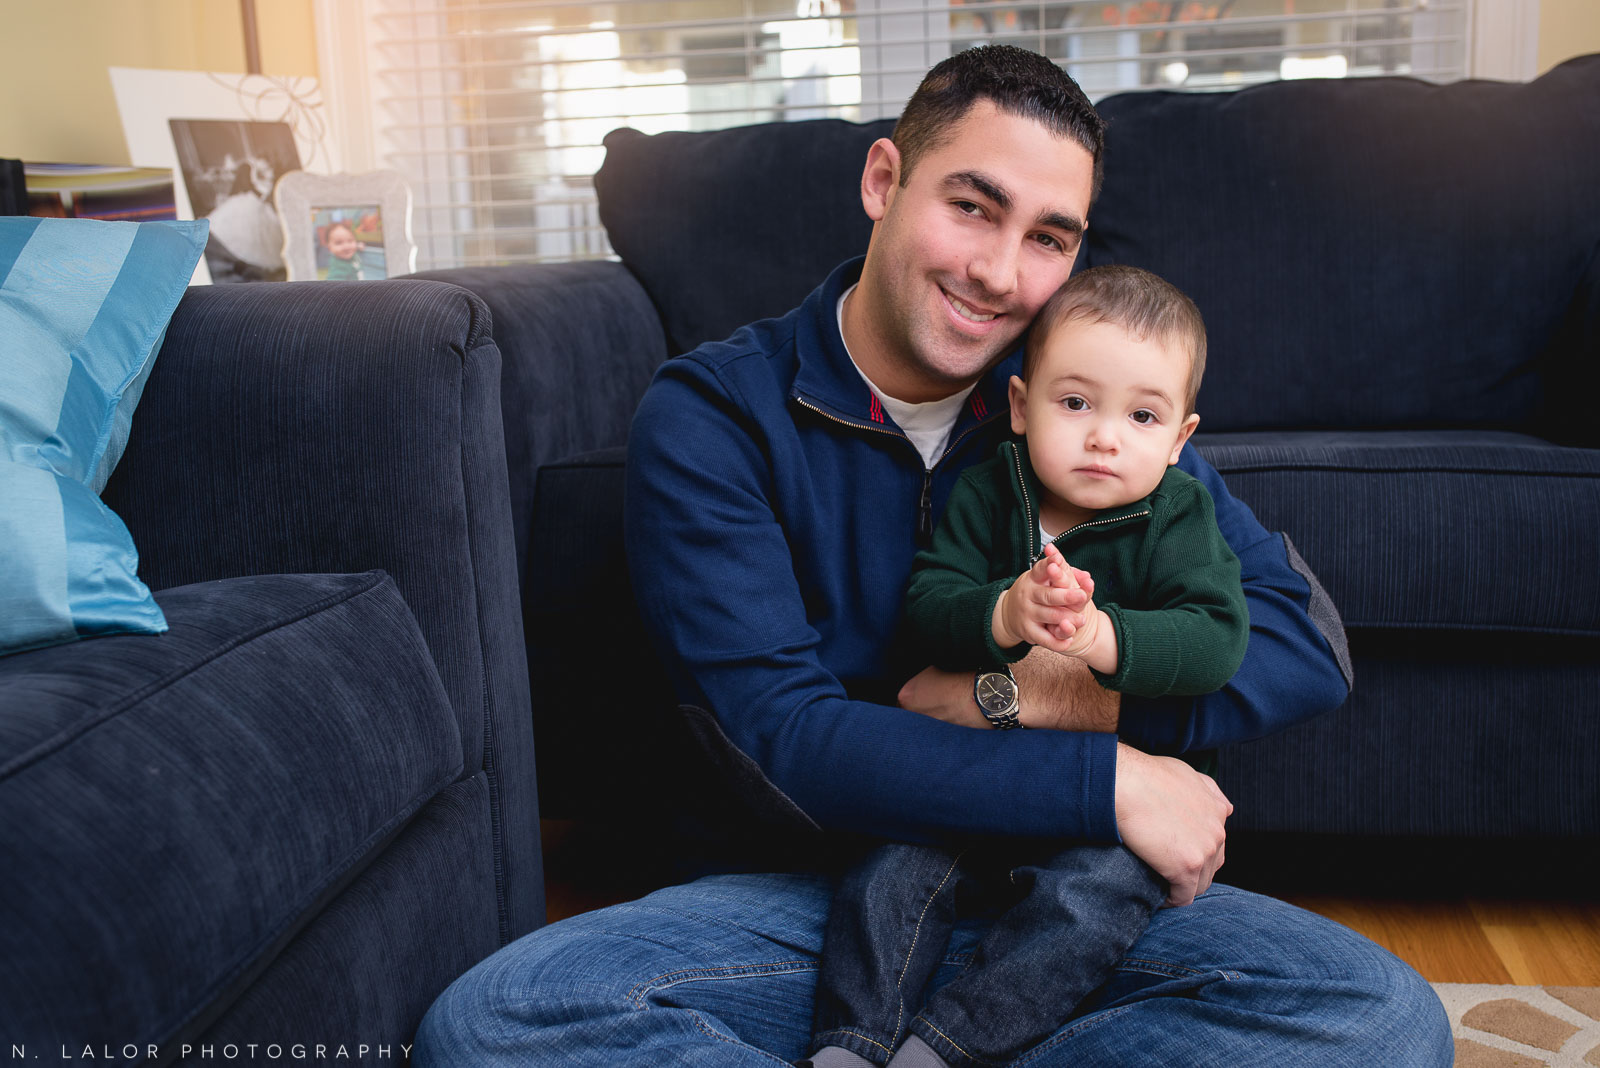 Father and son in the living room. Connecticut family photo by N. Lalor Photography.